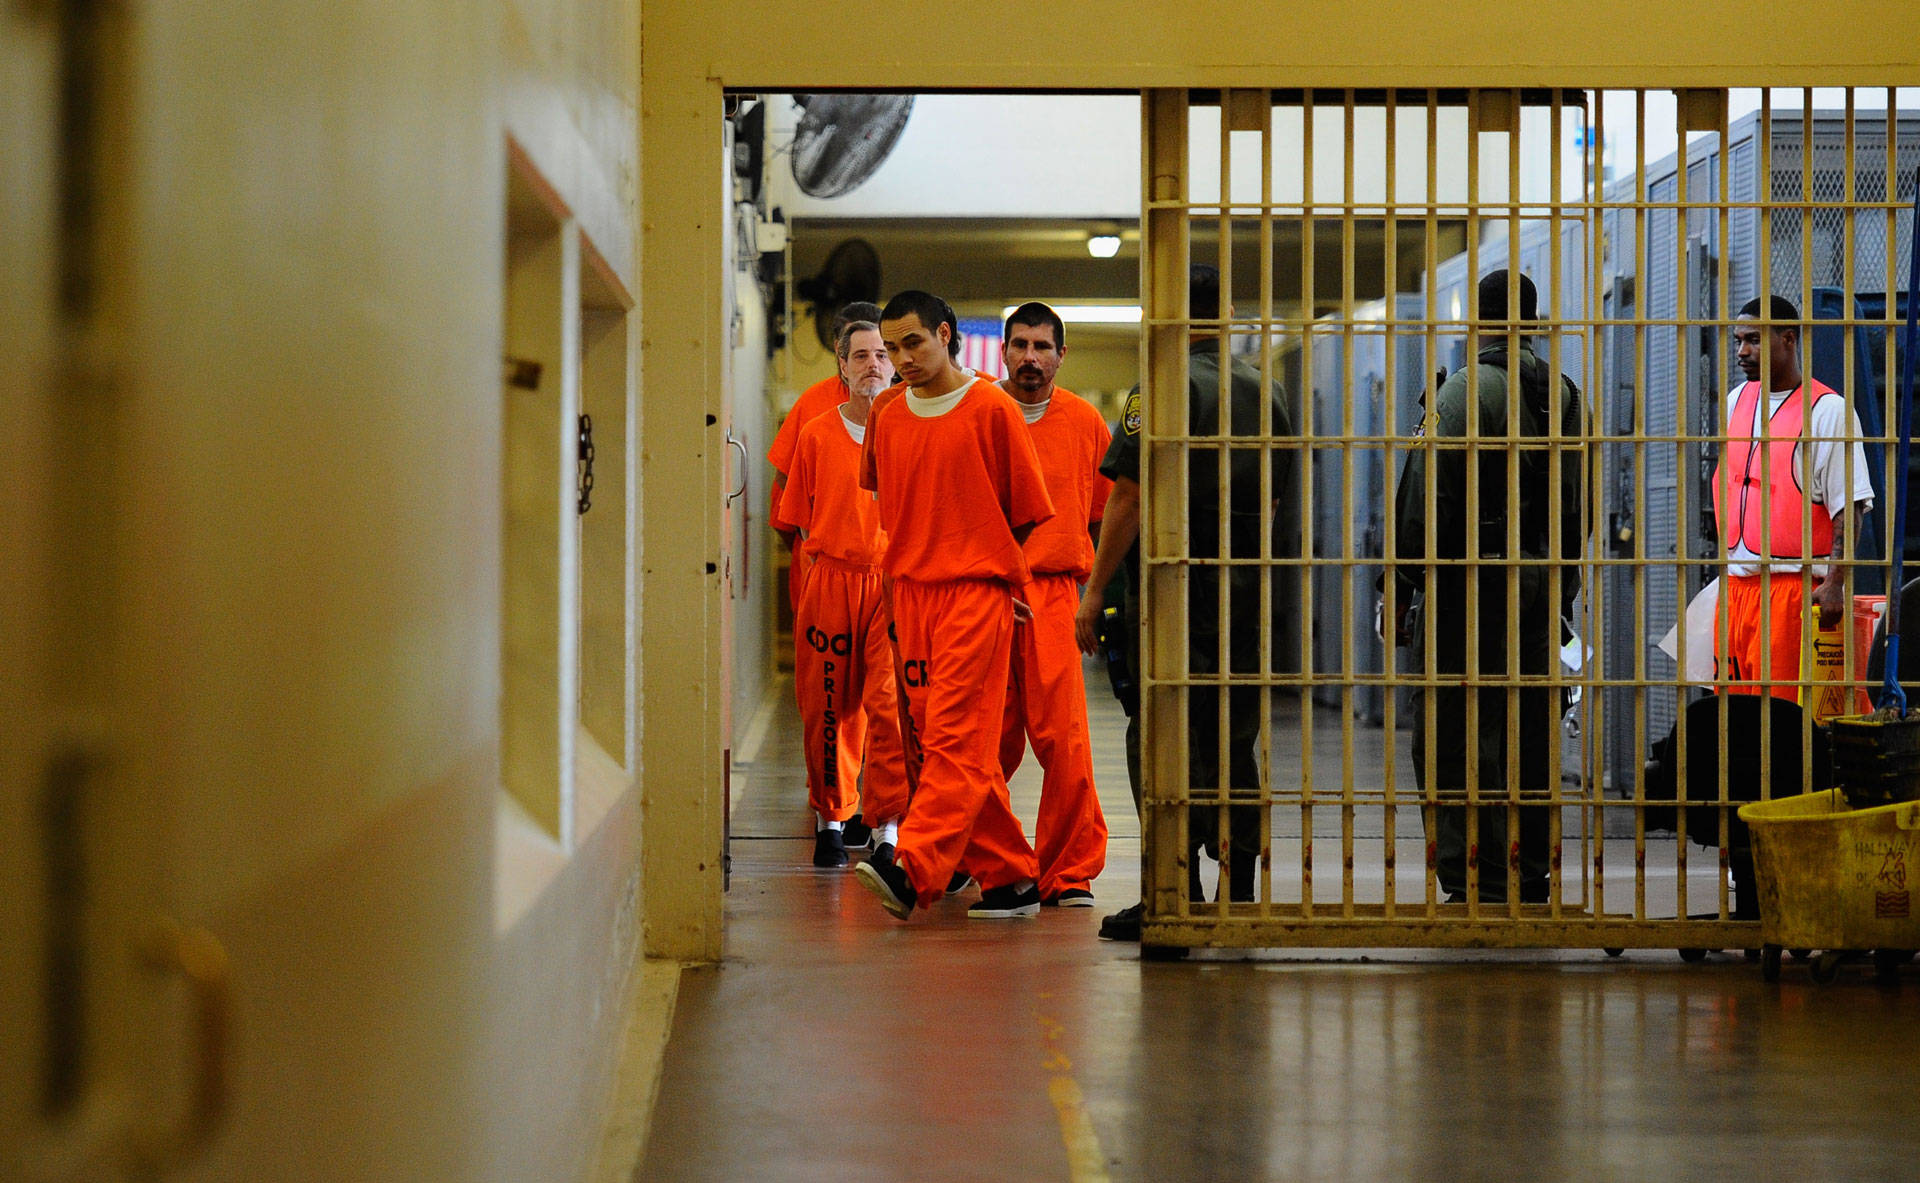 Inmates at Chino State Prison walk the hallway in 2010. Kevork Djansezian/Getty Images